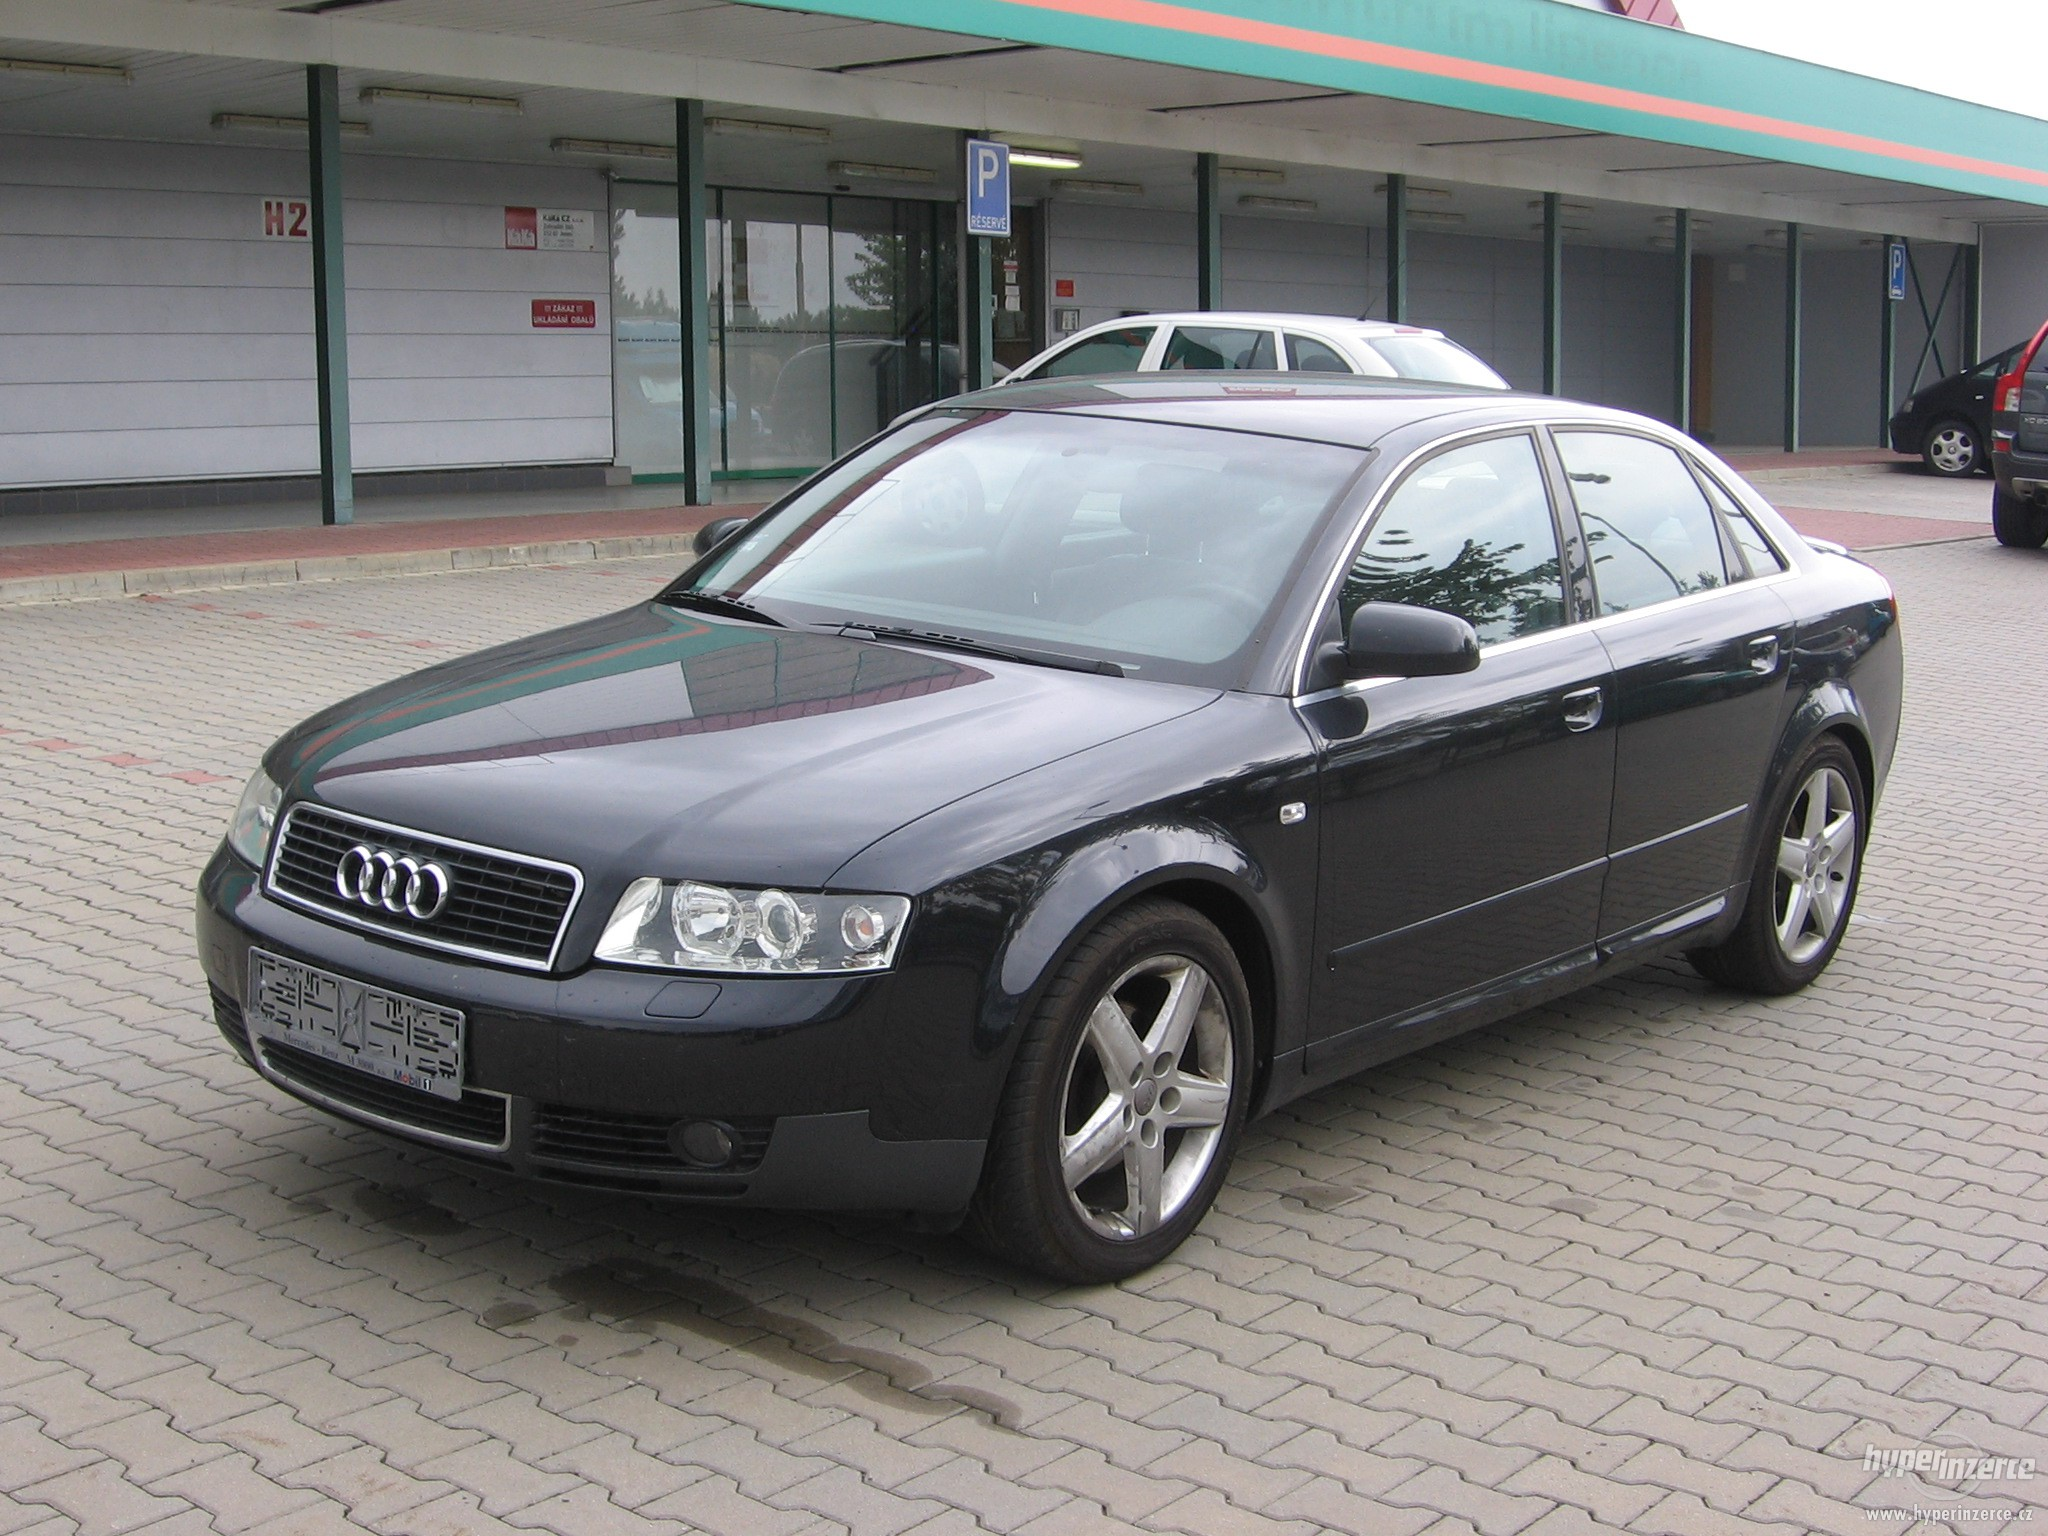 2004 audi a4 partsopen. Black Bedroom Furniture Sets. Home Design Ideas